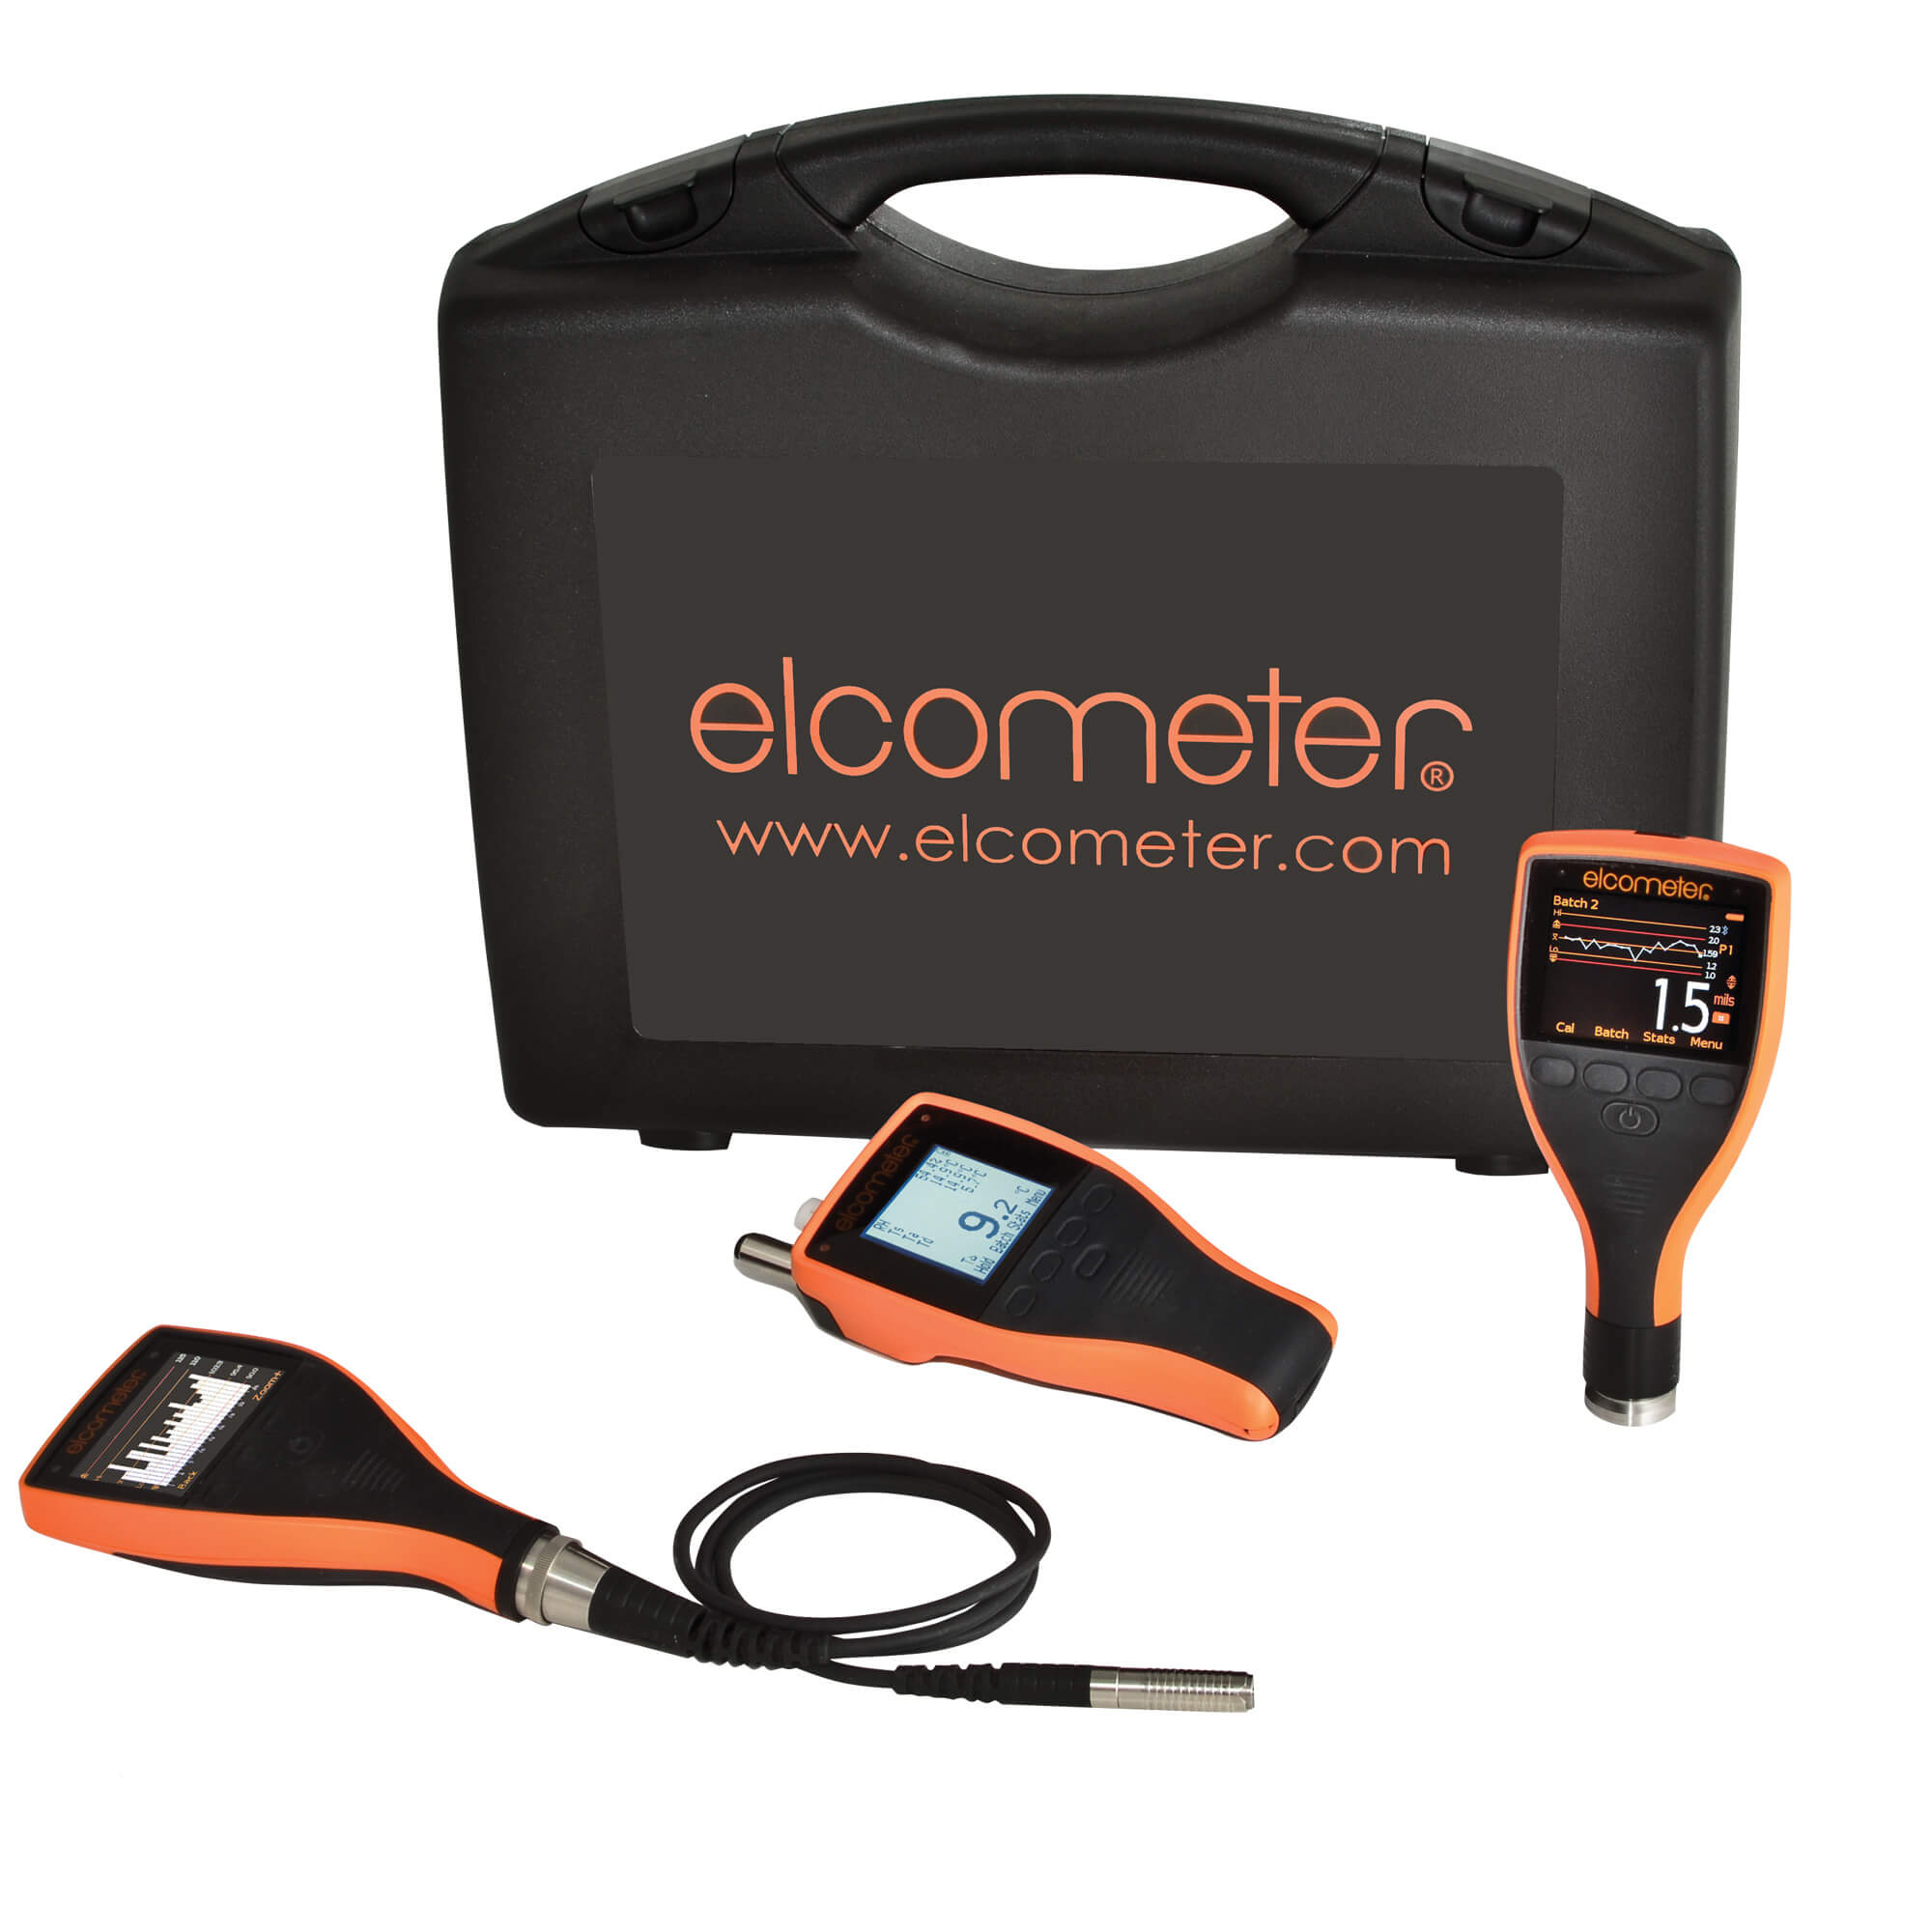 Elcometer Digital Inspection Kits Model B - ProQuip